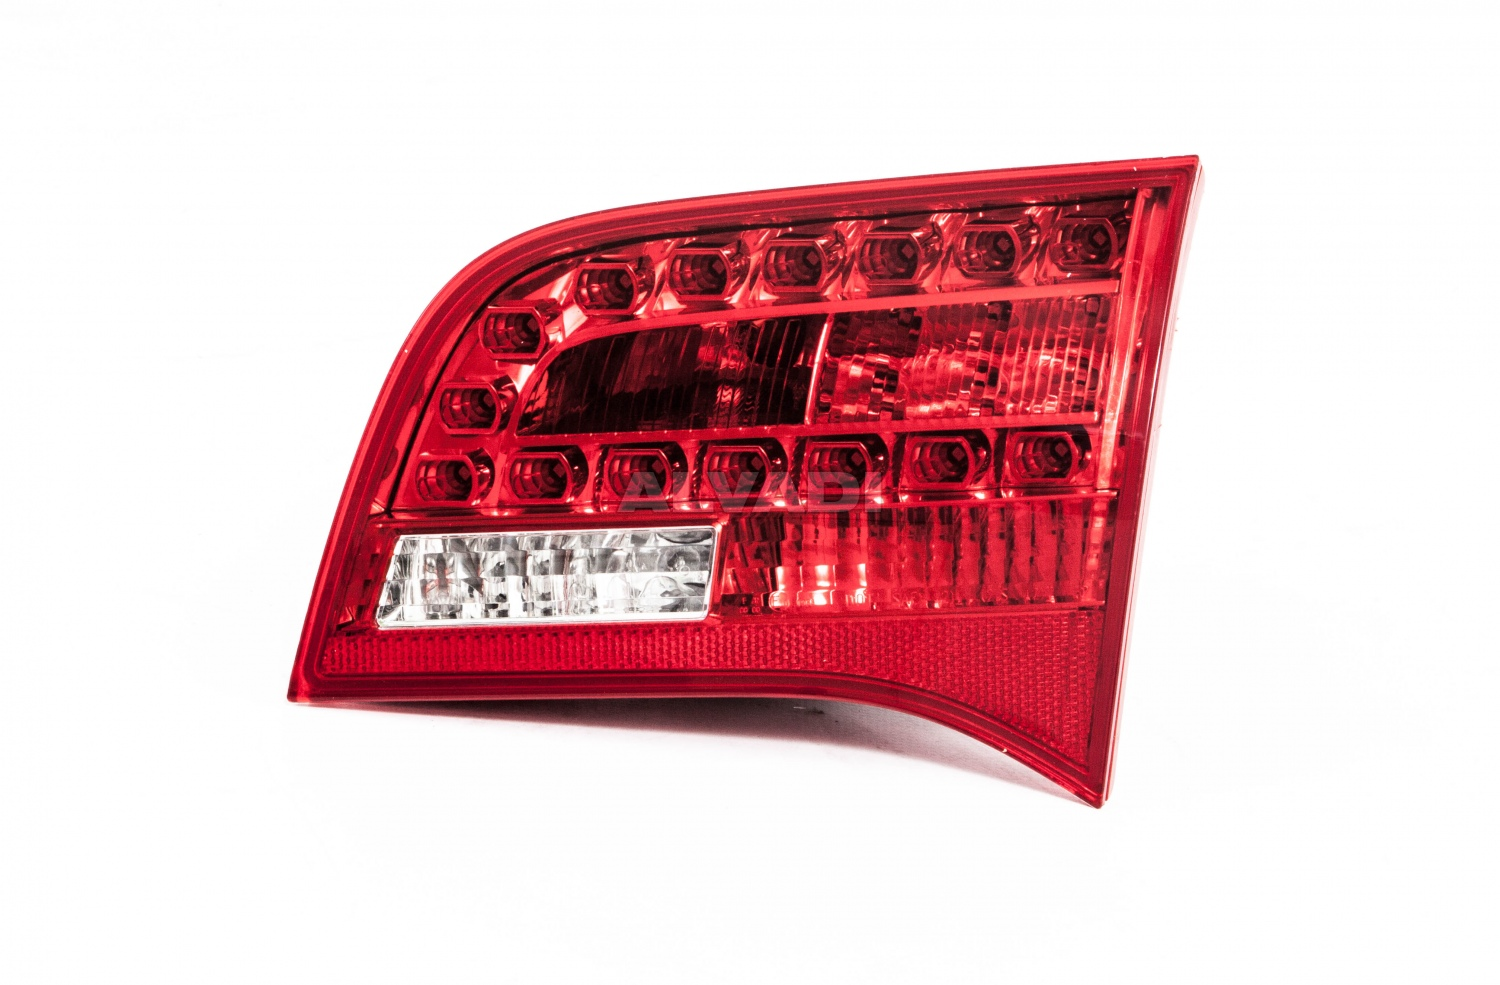 Tail Light Audi A6 C6 Sdn Avant Parts 4f Fuse Box Location Item Code Al47164